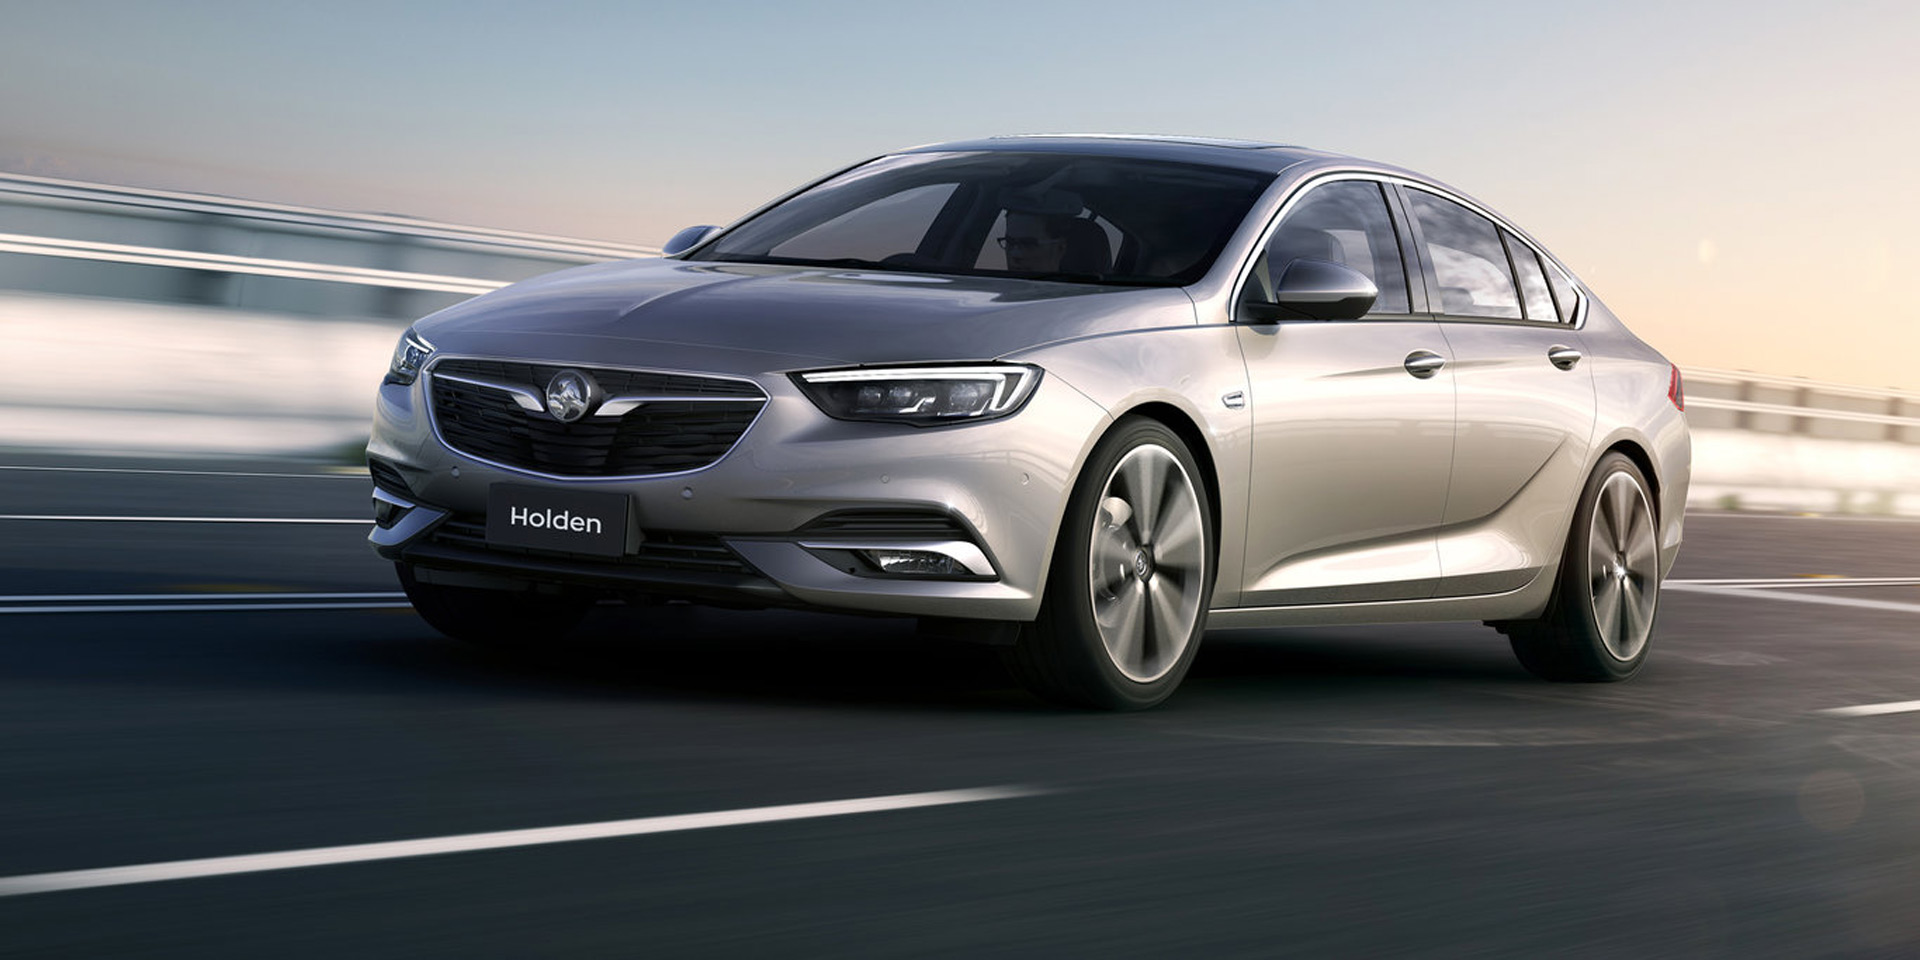 2018 Holden Commodore revealed, previews 2018 Buick Regal